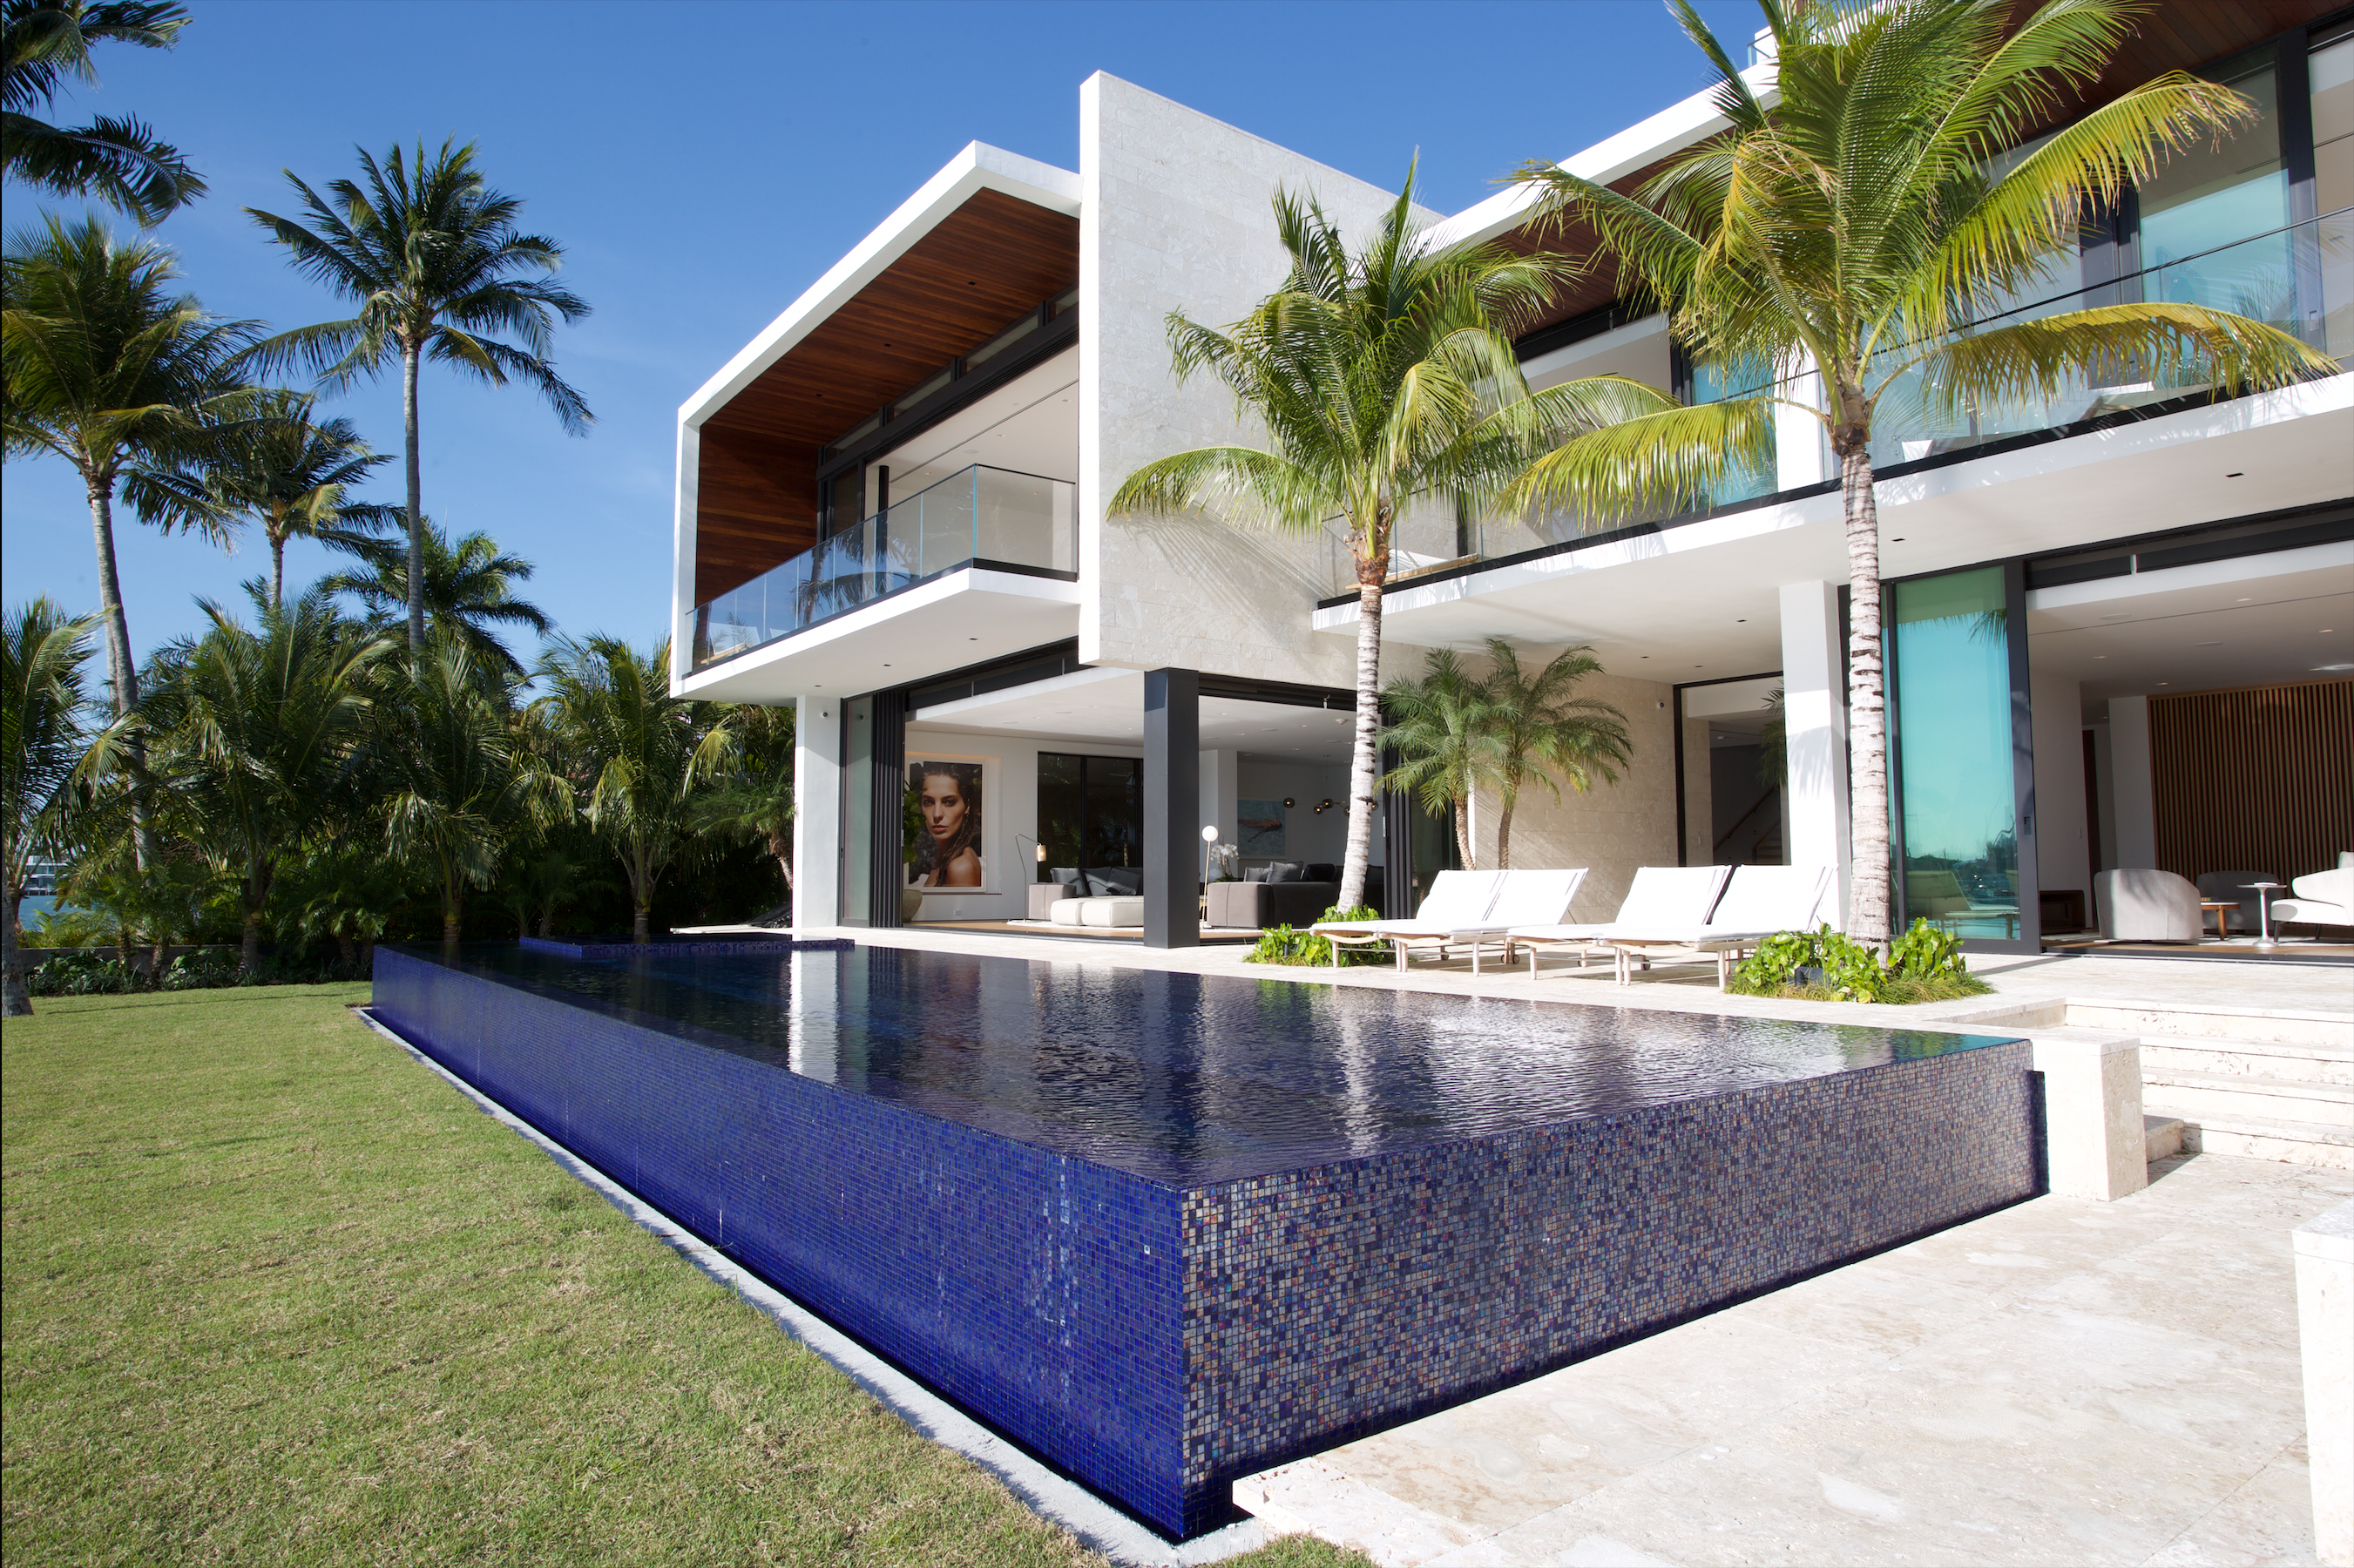 Ultra Modern Home In Miami Florida Video Tour In Comments Oc 2702 1800 Via Classy Bro Ultra Modern Homes Modern House Design Modern House